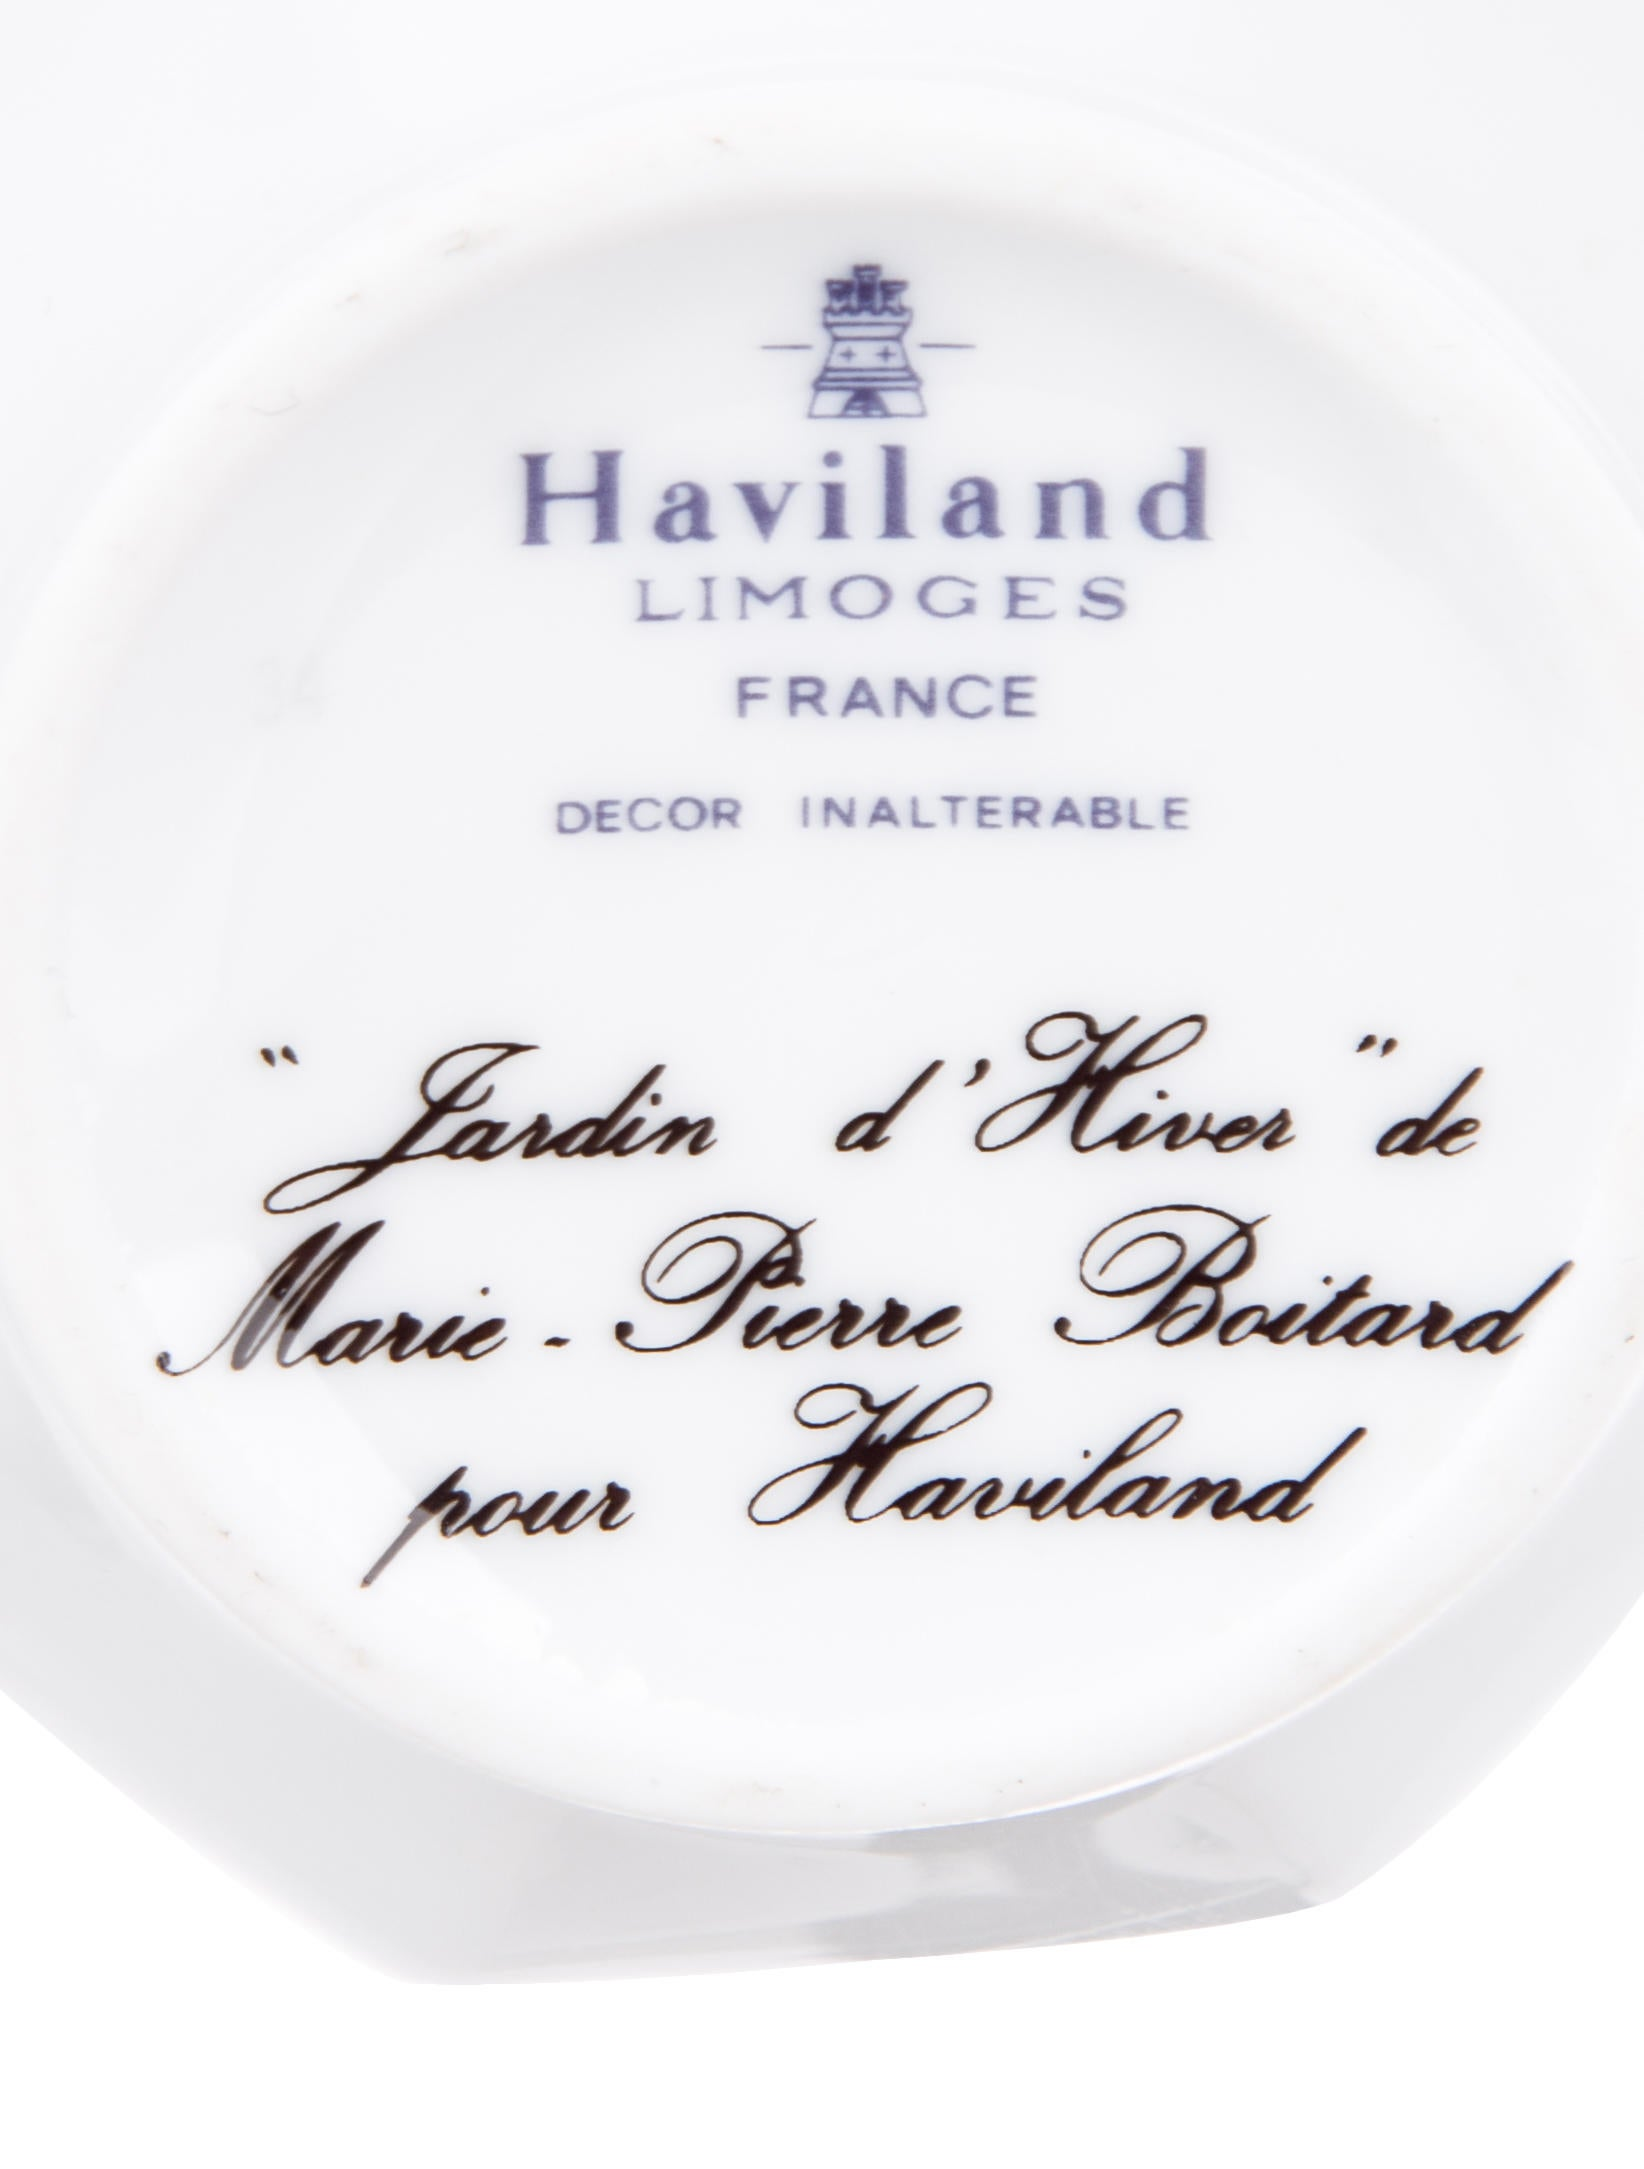 Haviland jardin d 39 hiver cream sugar tabletop and for Jardin d hiver